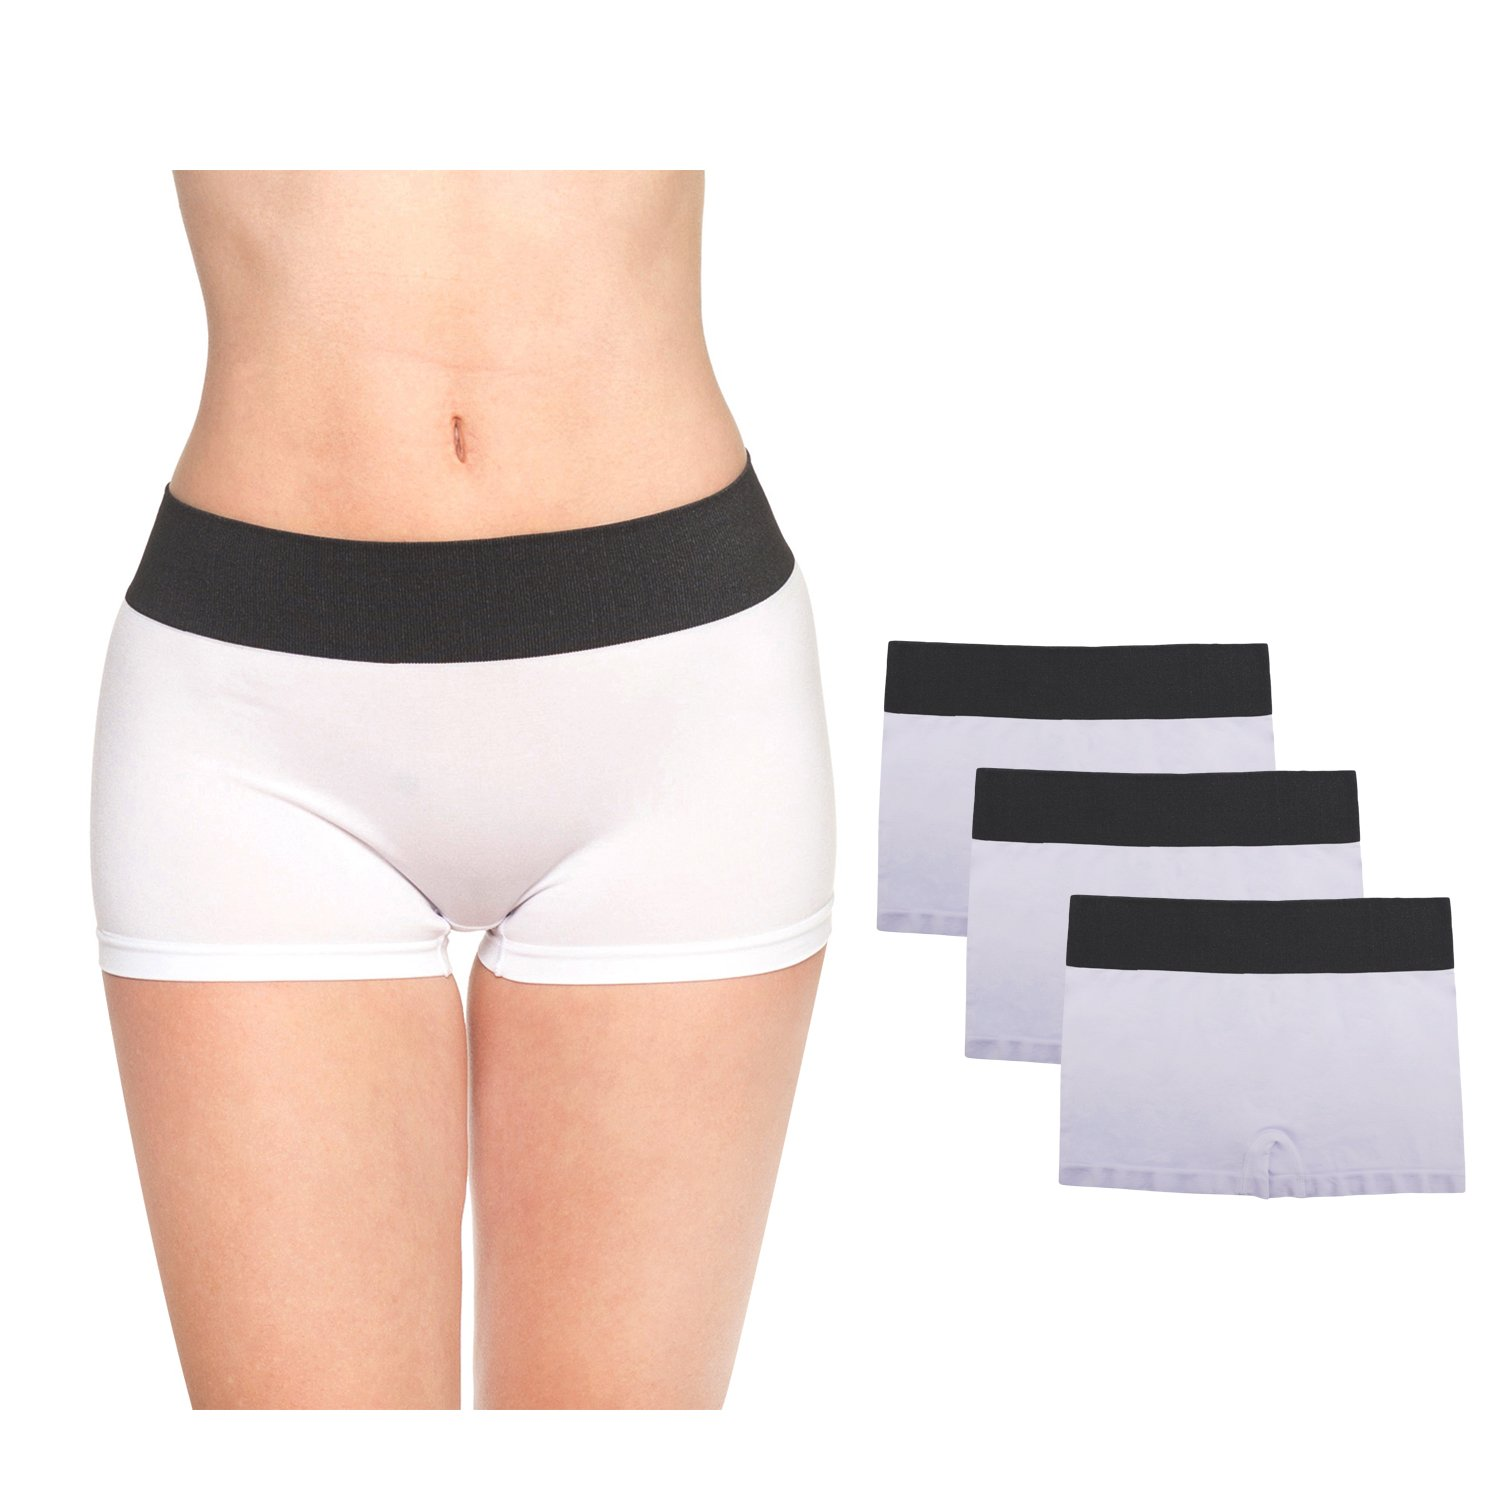 LastFor1 Women Boxer Sport Underwear Comfort Utral Soft Warm Mid Rise Nylon Boyshorts Panties Briefs Plus Size Shorts 3 Pack